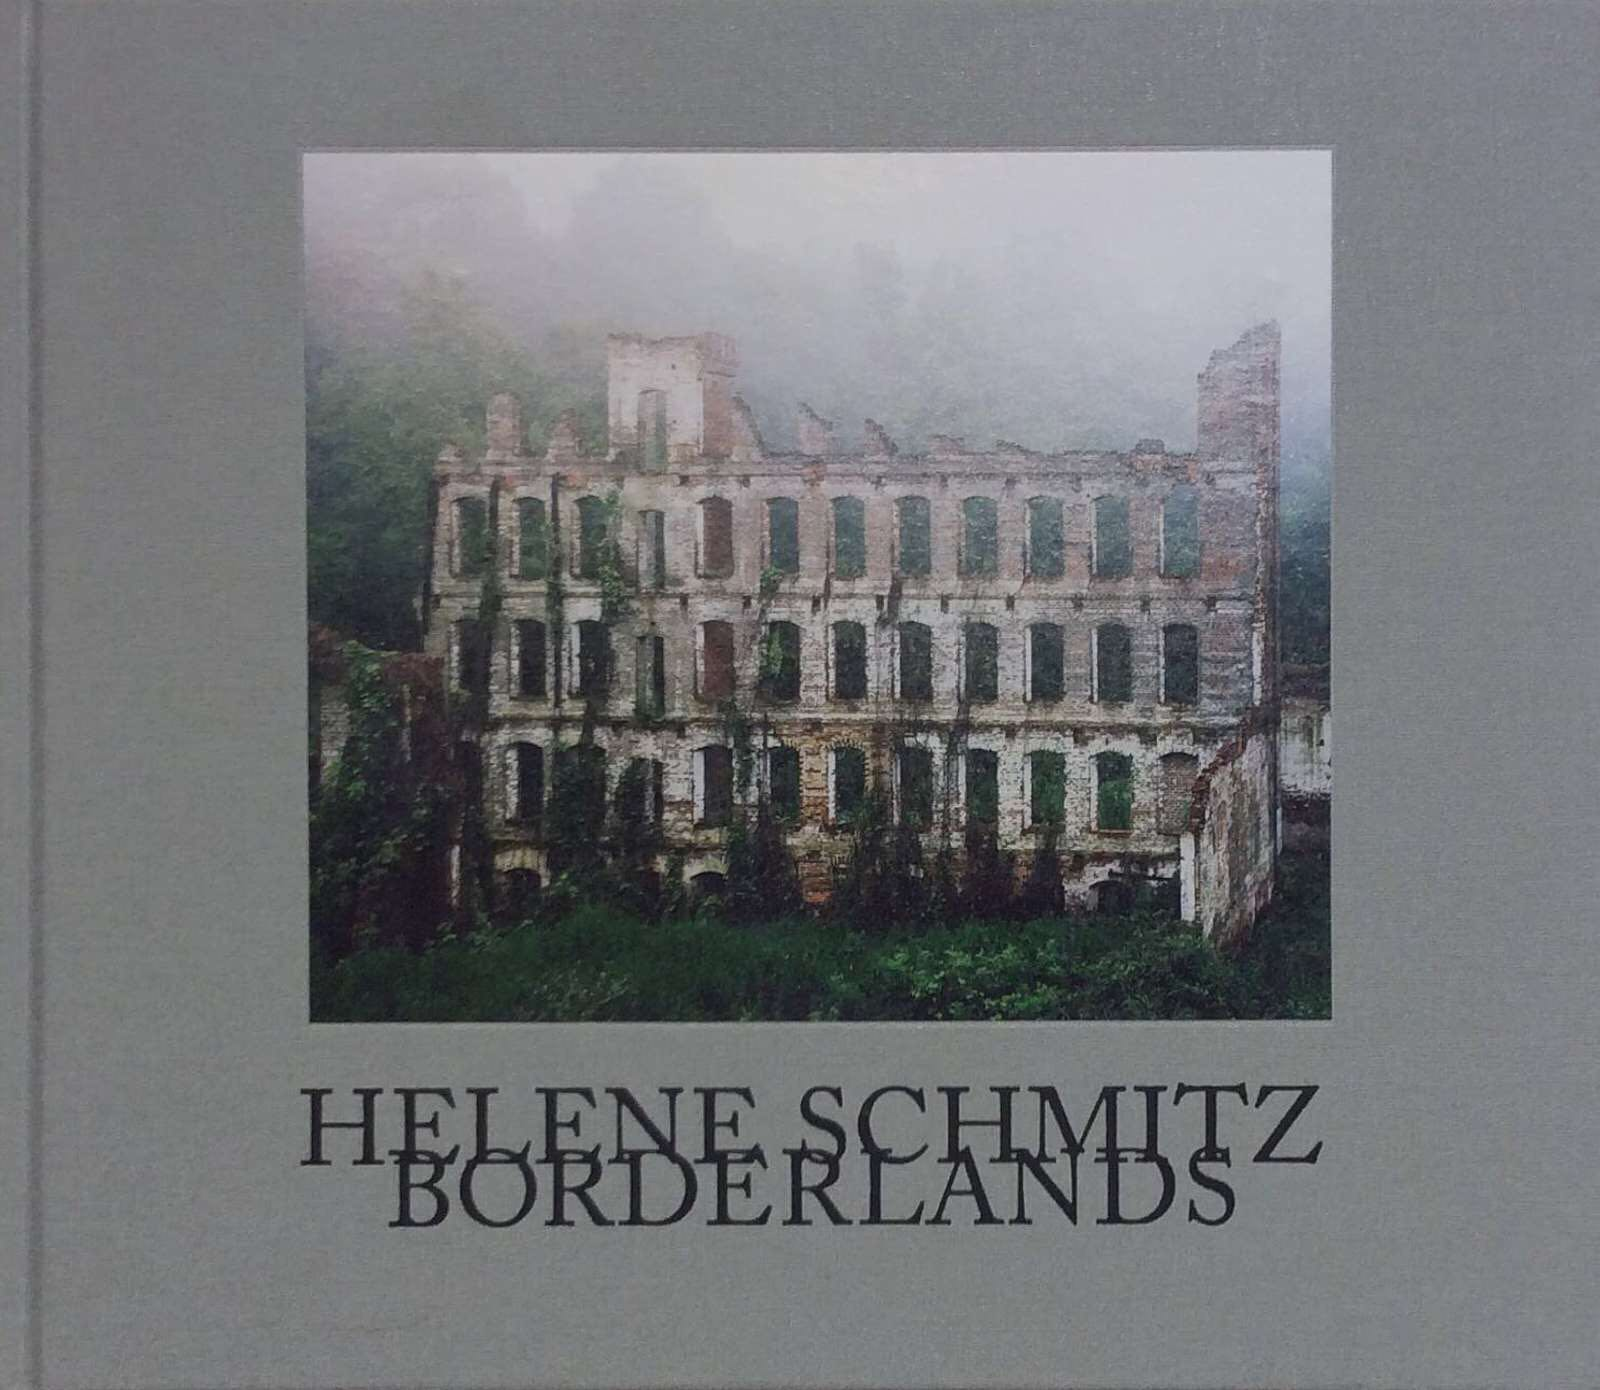 Schmitz, Helene. Borderlands